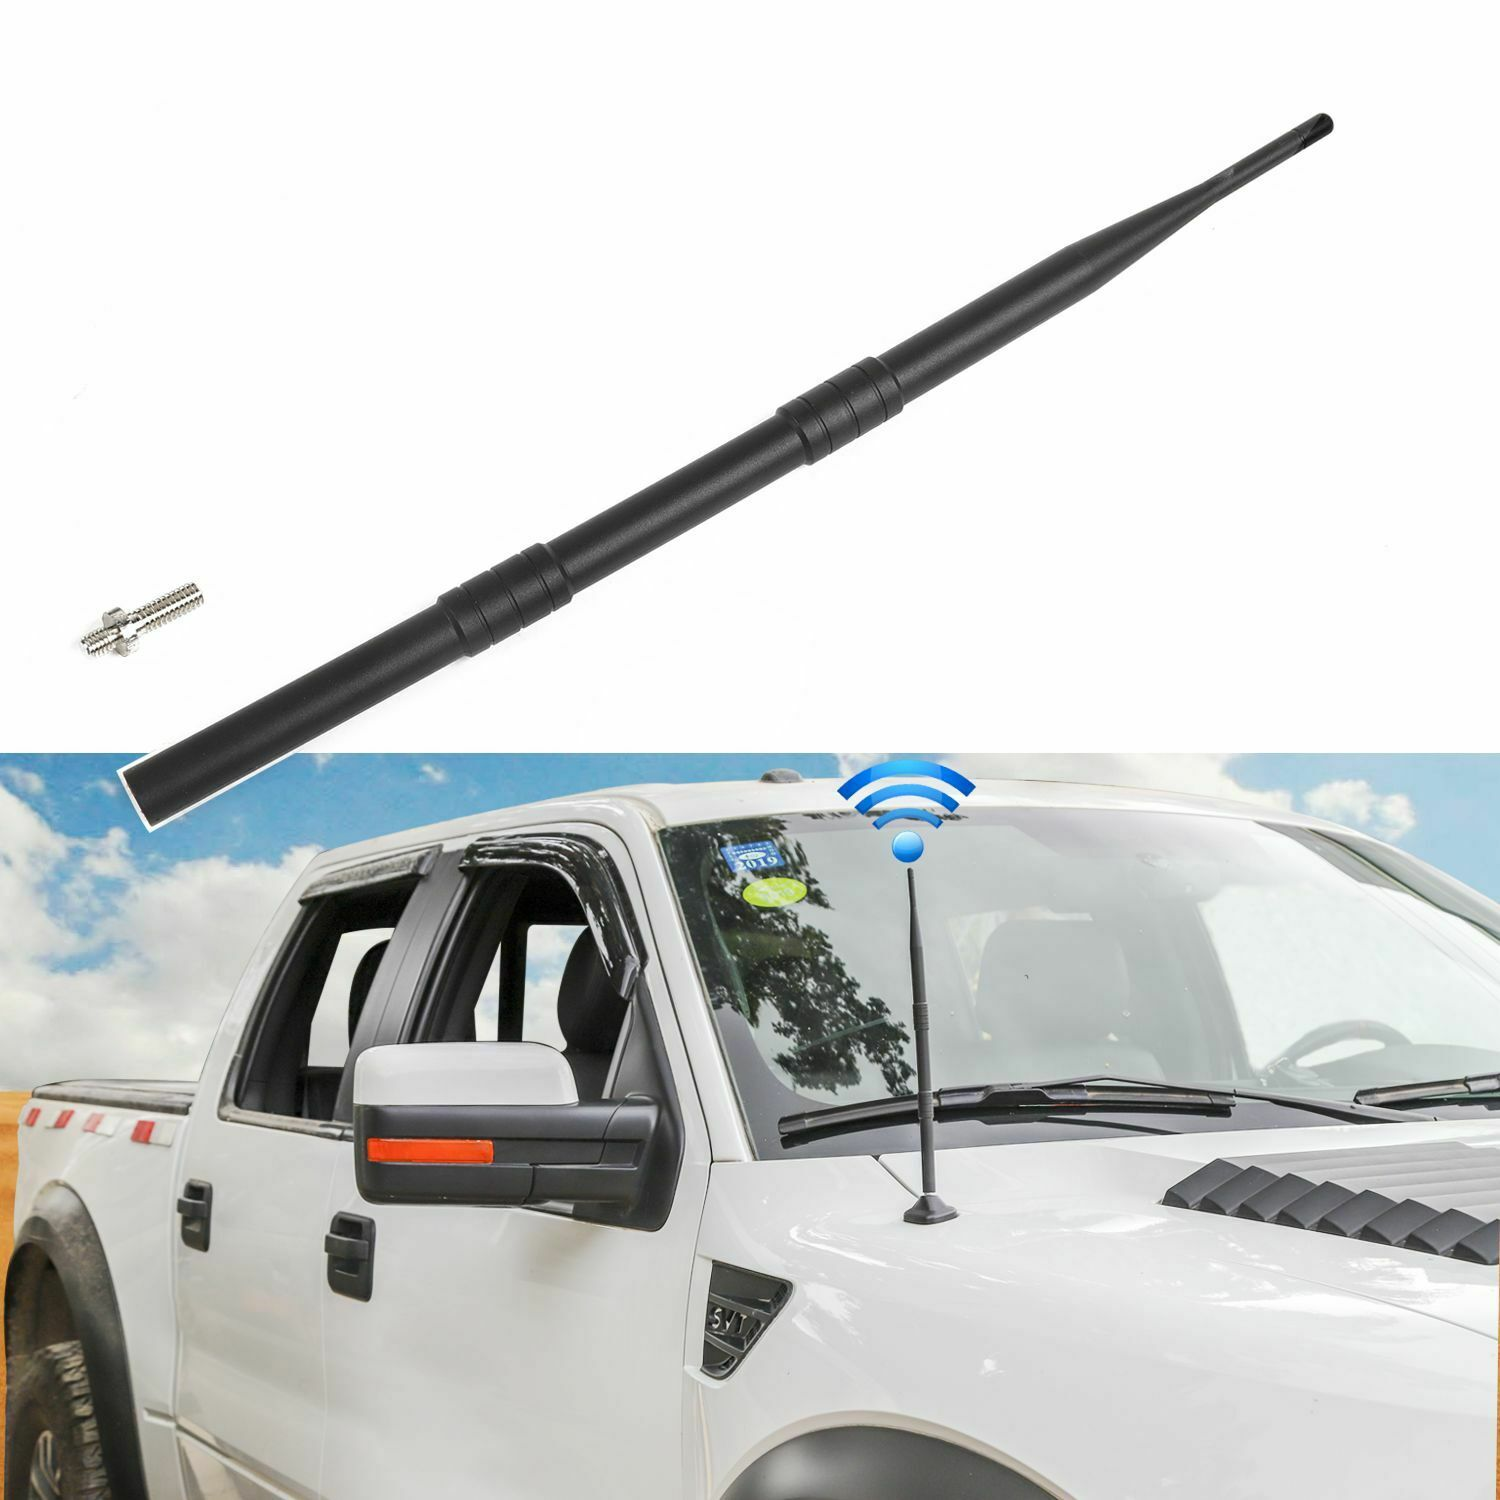 Antenna Replacement for 2009-2019 Ford F150 13 inches Flexible Rubber Antenna Designed for Optimized FM//AM Reception